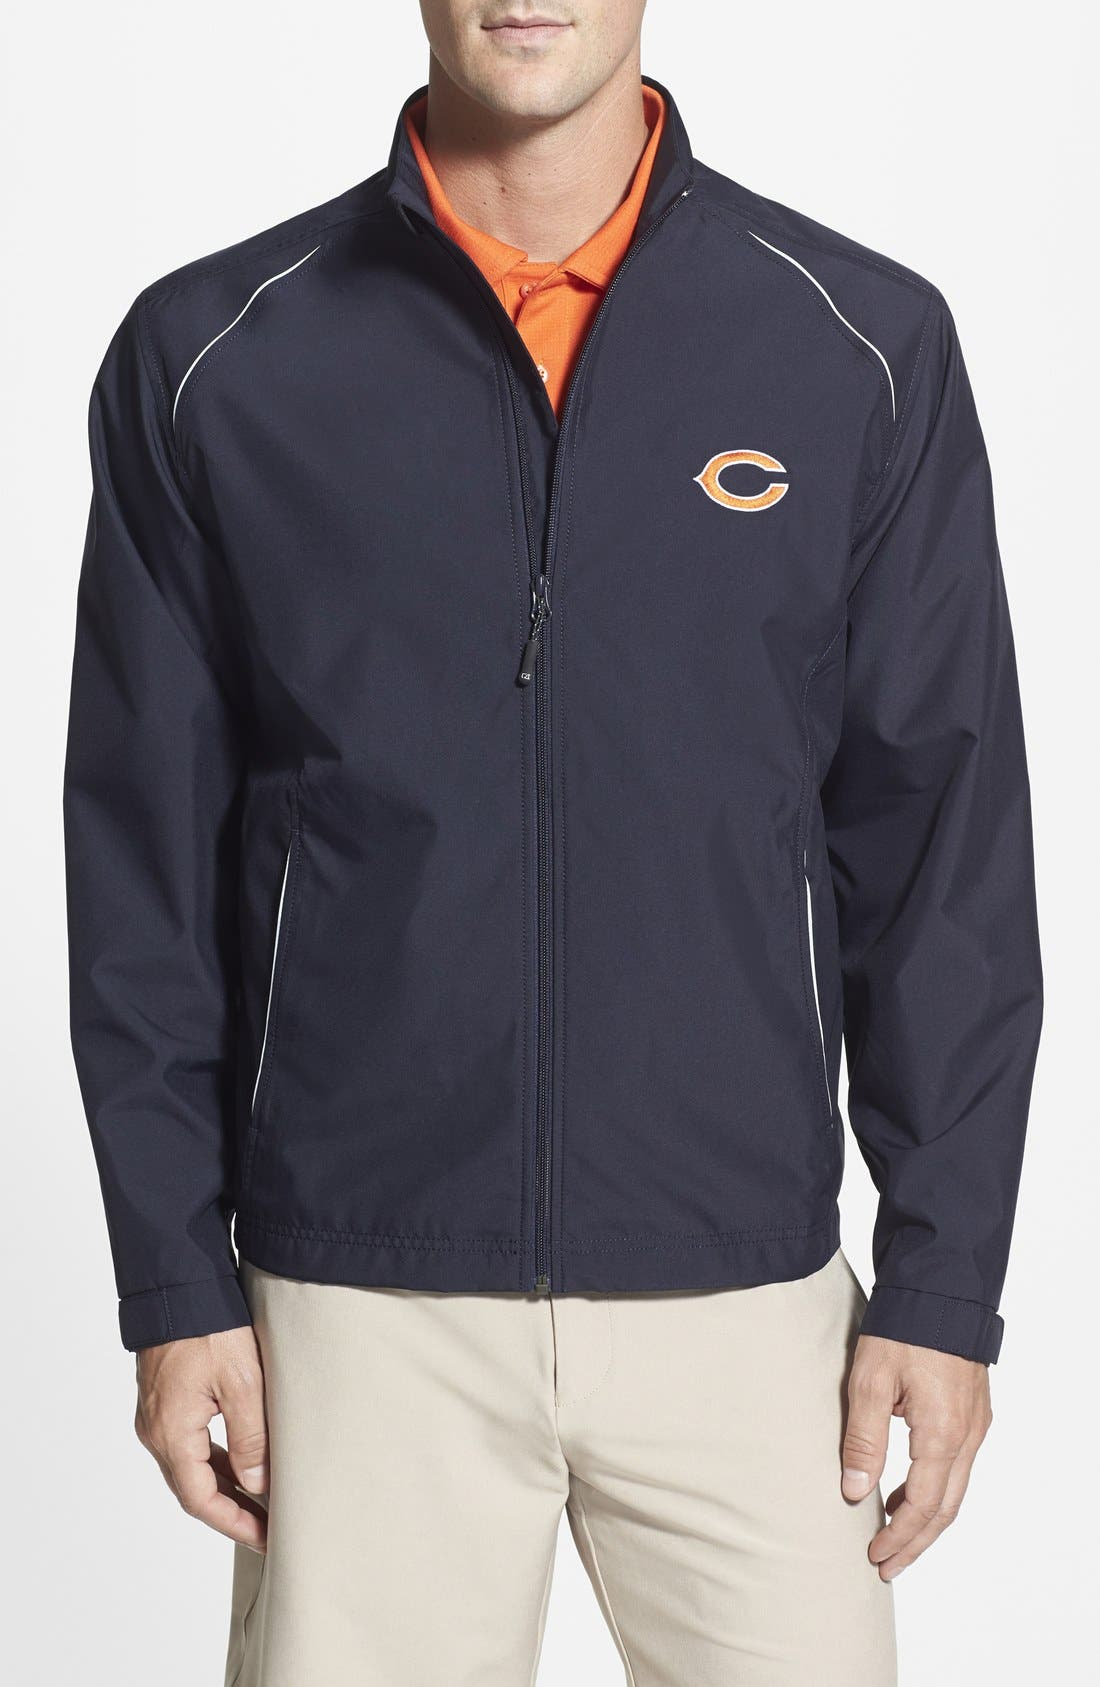 Chicago Bears - Beacon WeatherTec Wind & Water Resistant Jacket,                             Main thumbnail 1, color,                             420